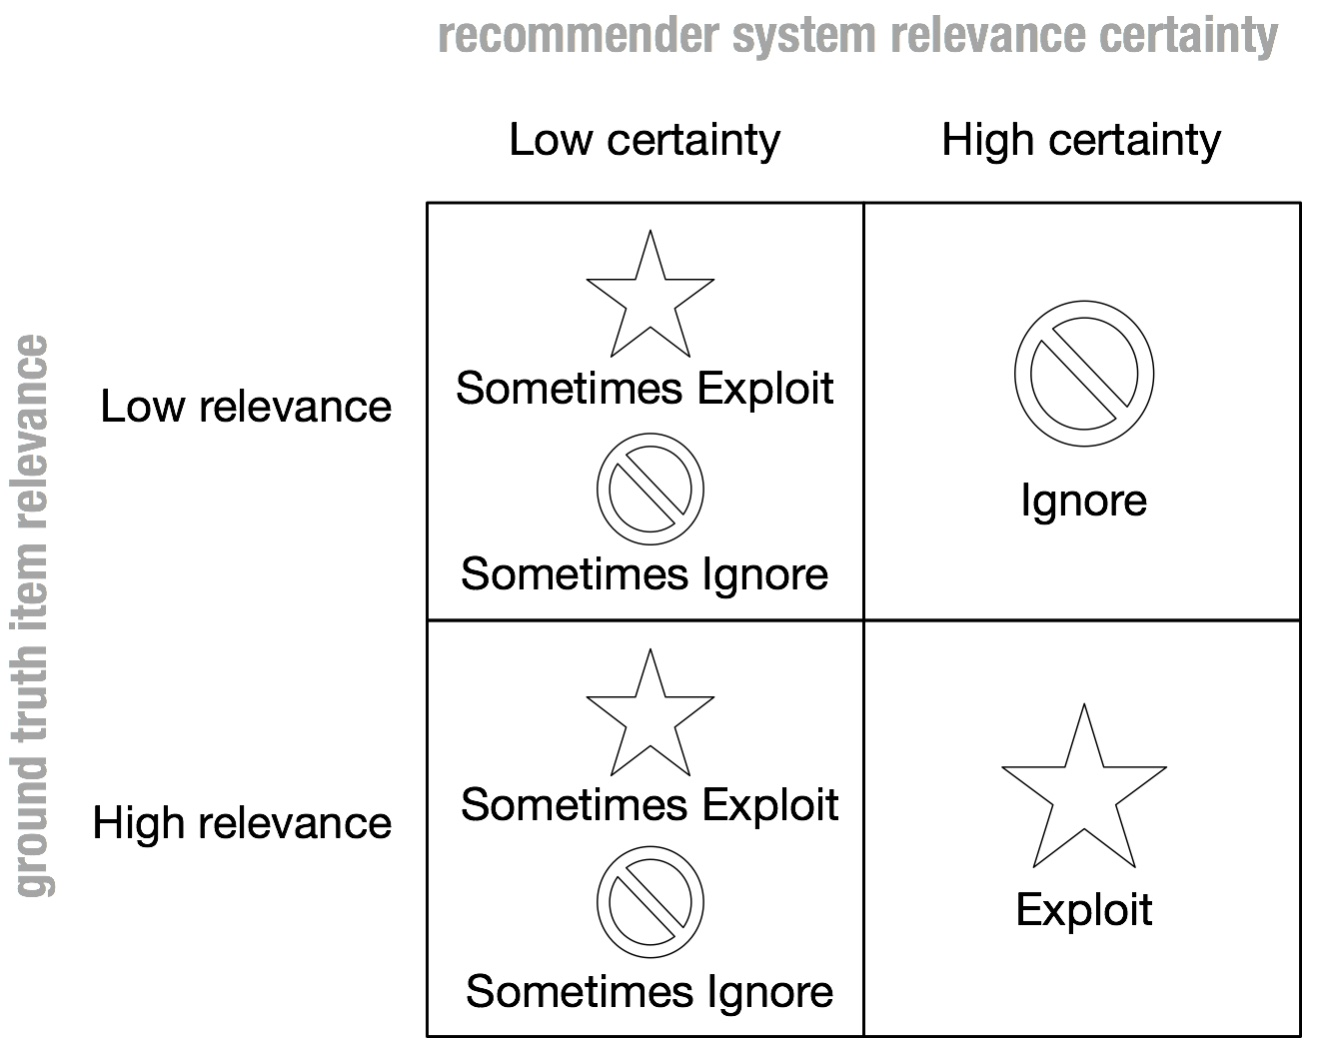 Figure 3. When a recommender is uncertain about an item relevance to a user, all it can do is either explore or ignore.